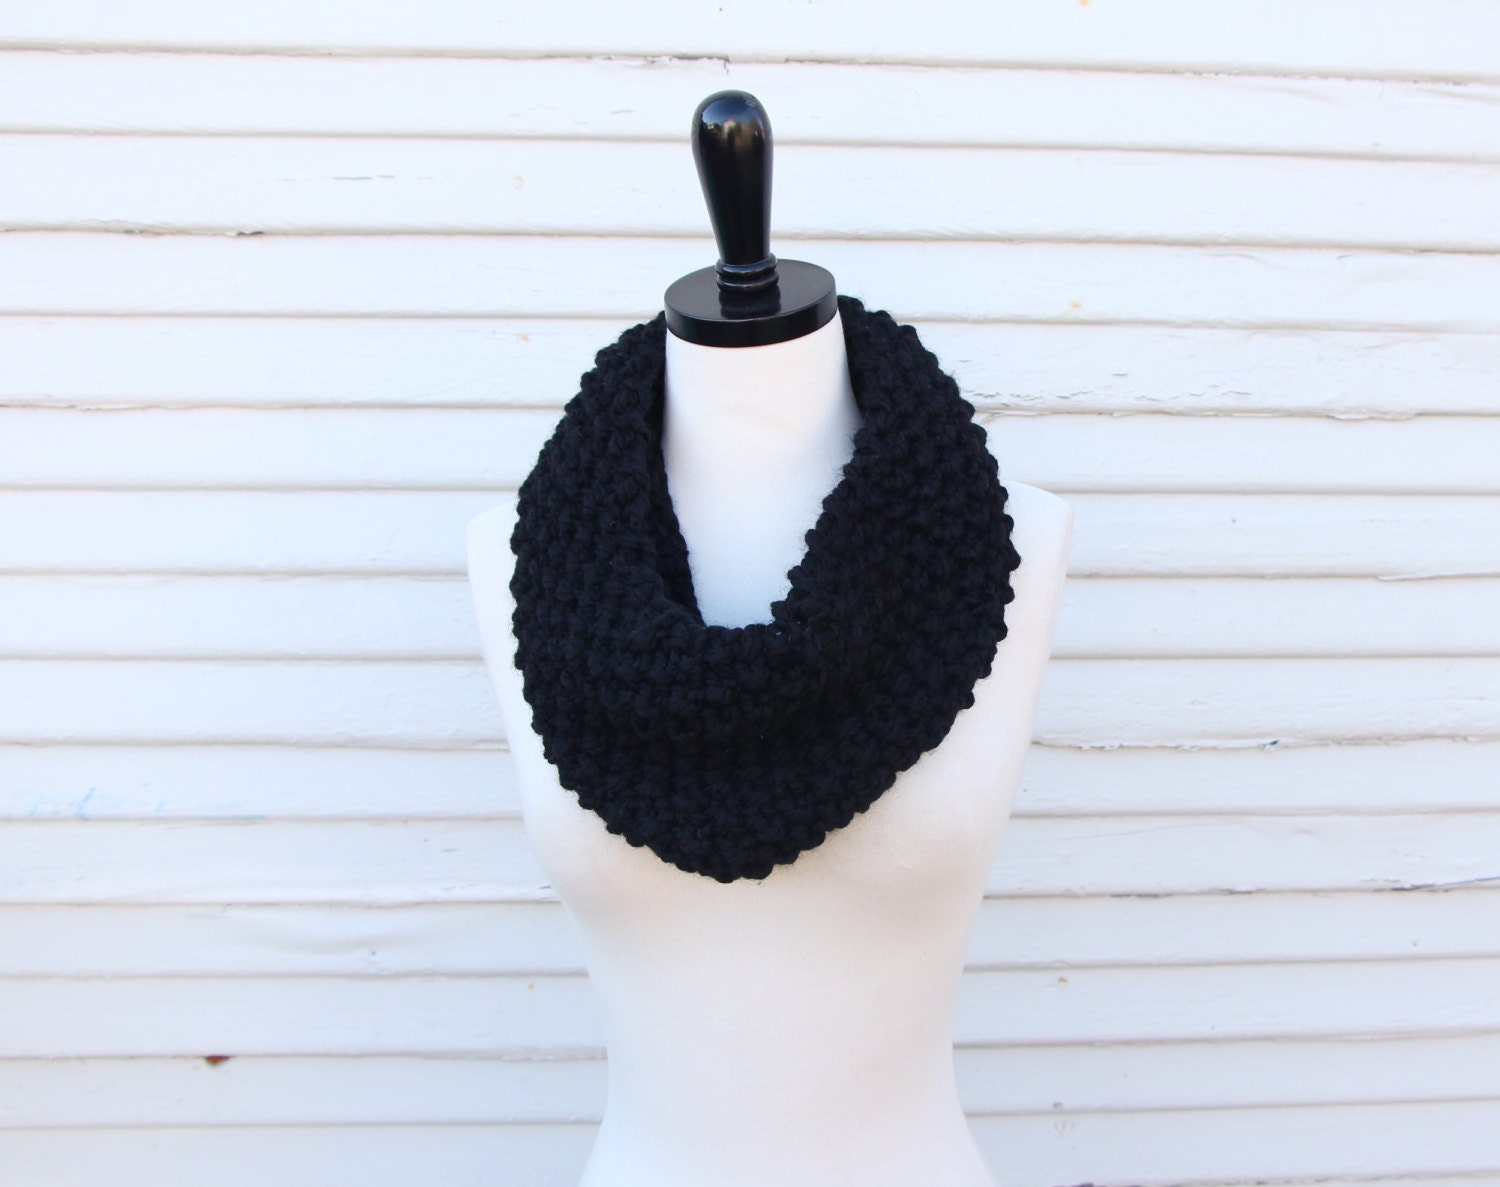 Single loop seed stitch cowl - hand knit with wool blend yarn